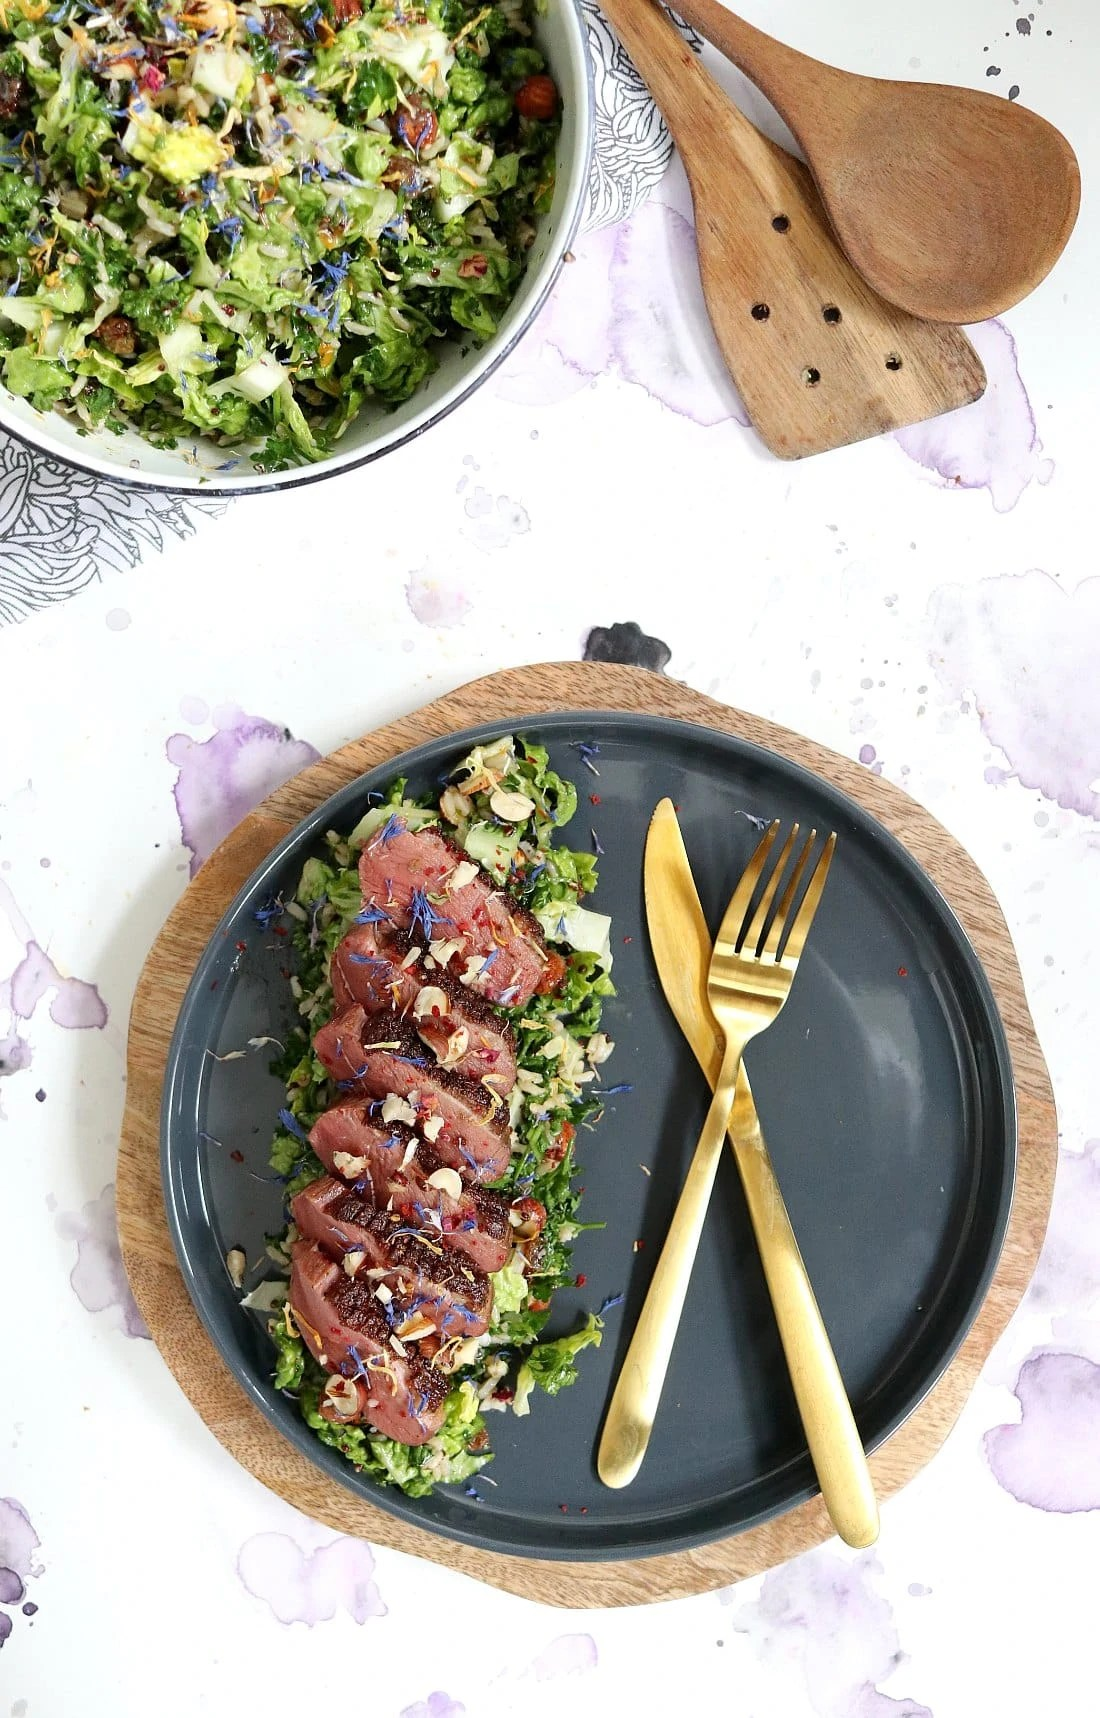 Duck breast and Wild Rice Salad (Salade de Magret du Canard et Son Mélange de Trois Riz)